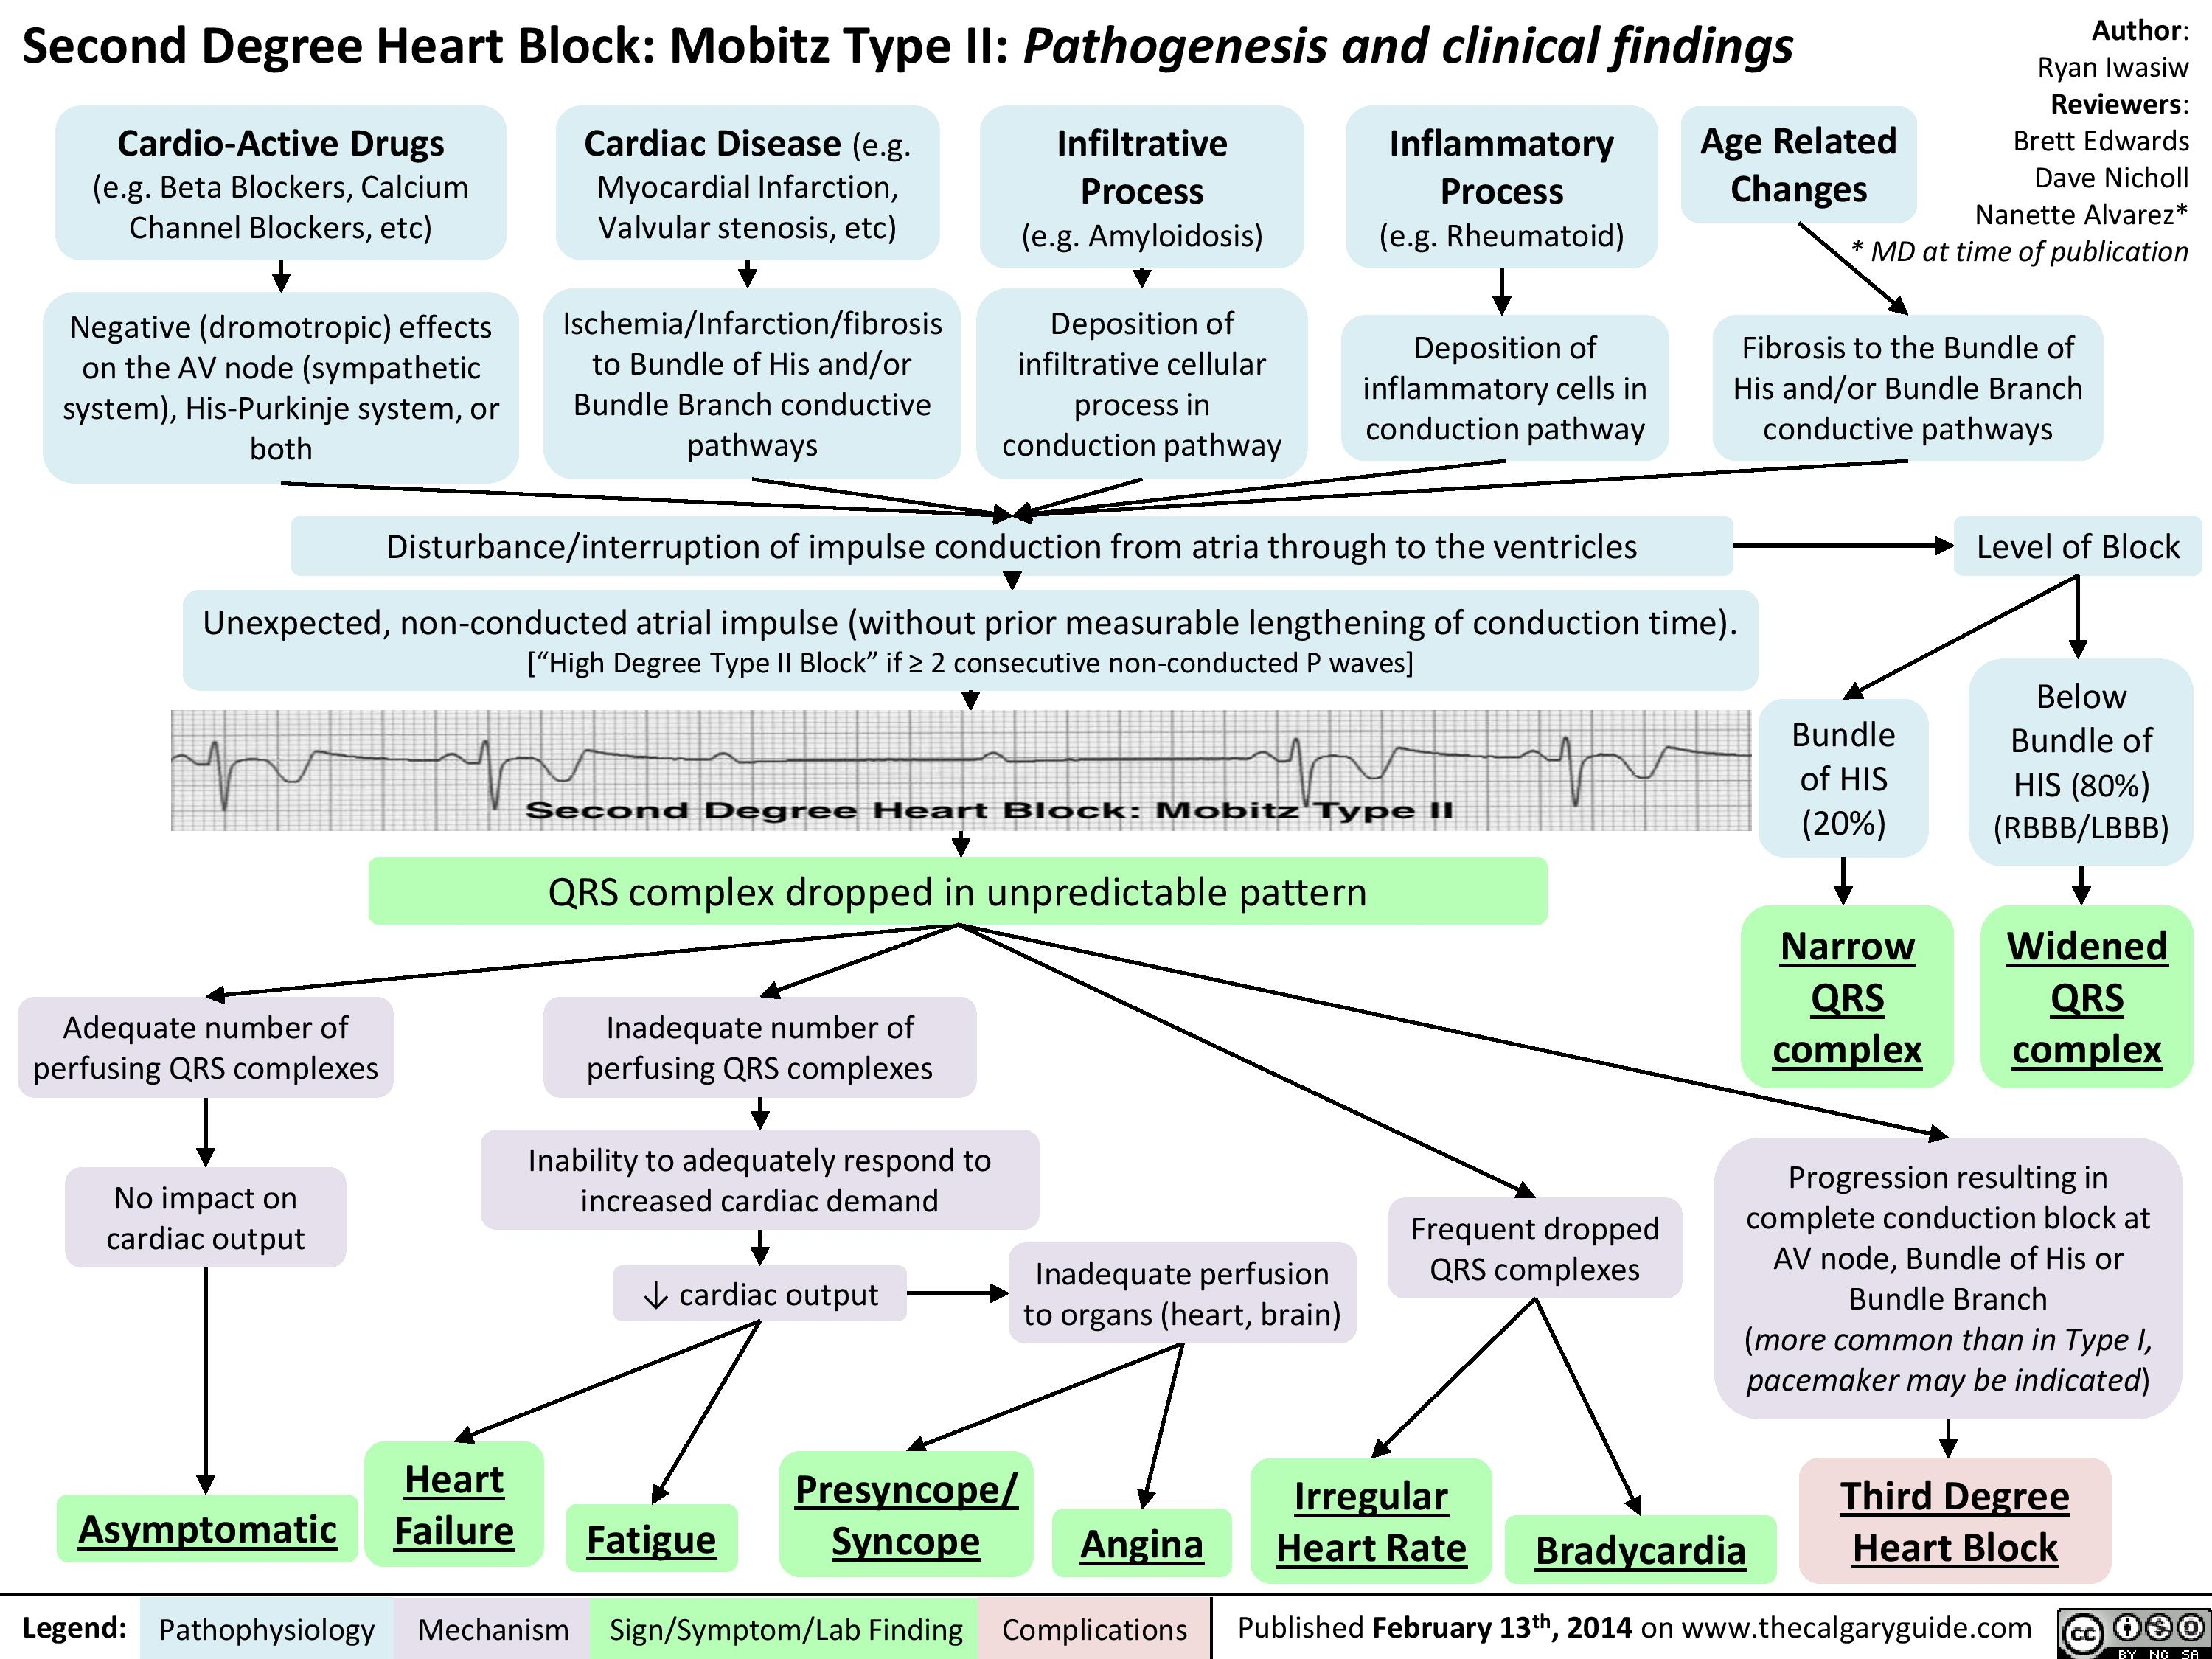 Second Degree Heart Block - Mobitz Type II - Pathogenesis      and clinical findings